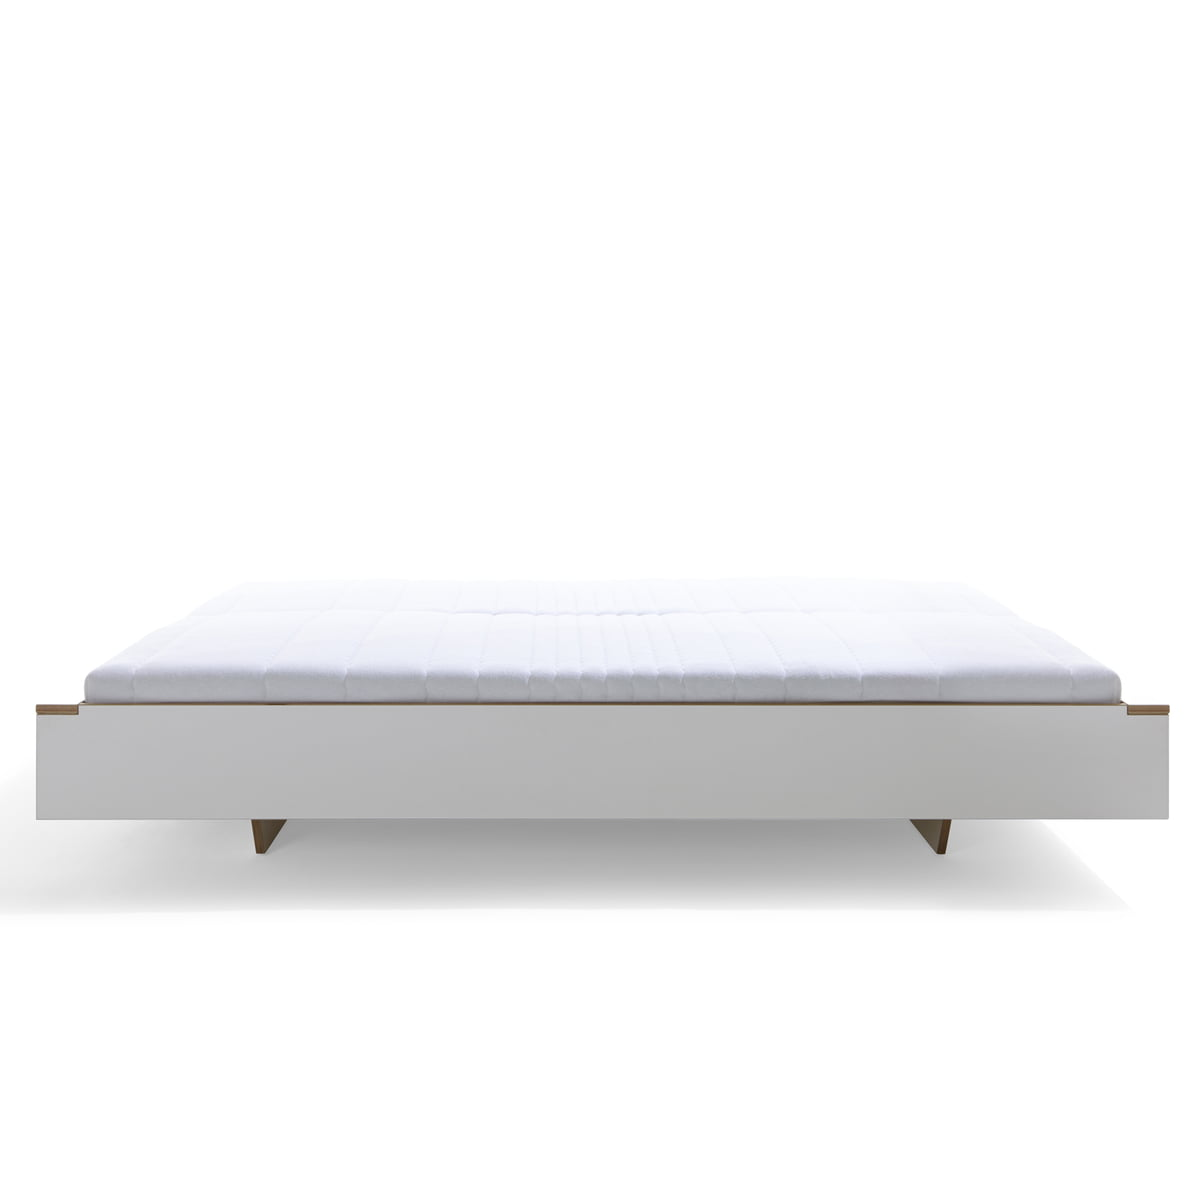 The Flai Bed by Müller Möbelwerkstätten in the shop